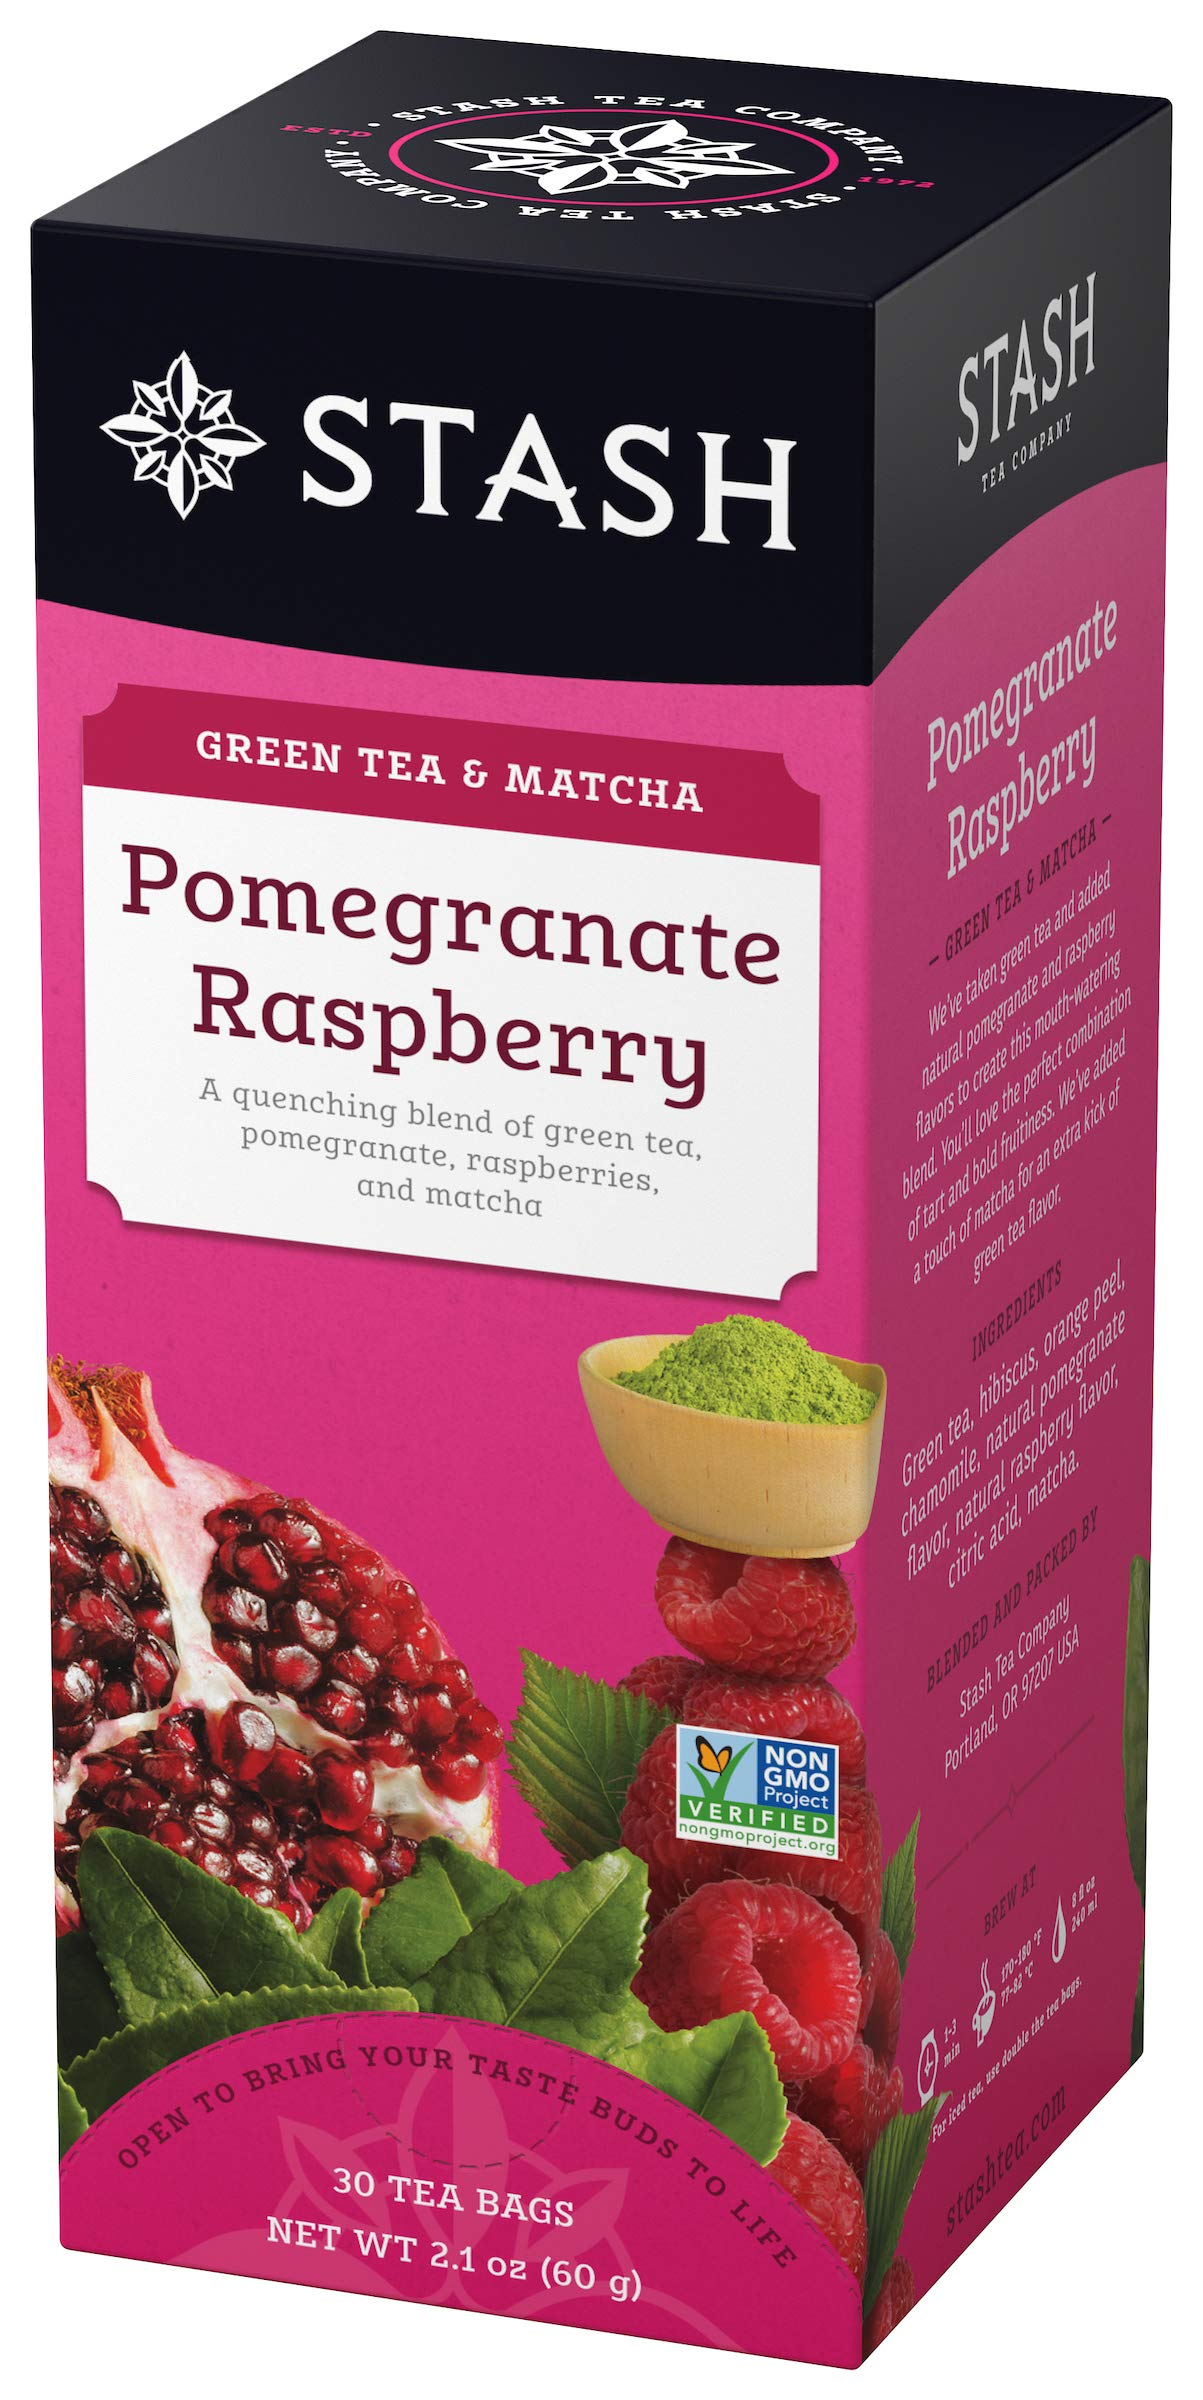 Stash Tea Pomegranate Raspberry Green Tea 30 Count Tea Bags in Foil (Pack of 6) Individual Green Tea Bags for Use in Teapots Mugs or Teacups, Brew Hot Tea or Iced Tea